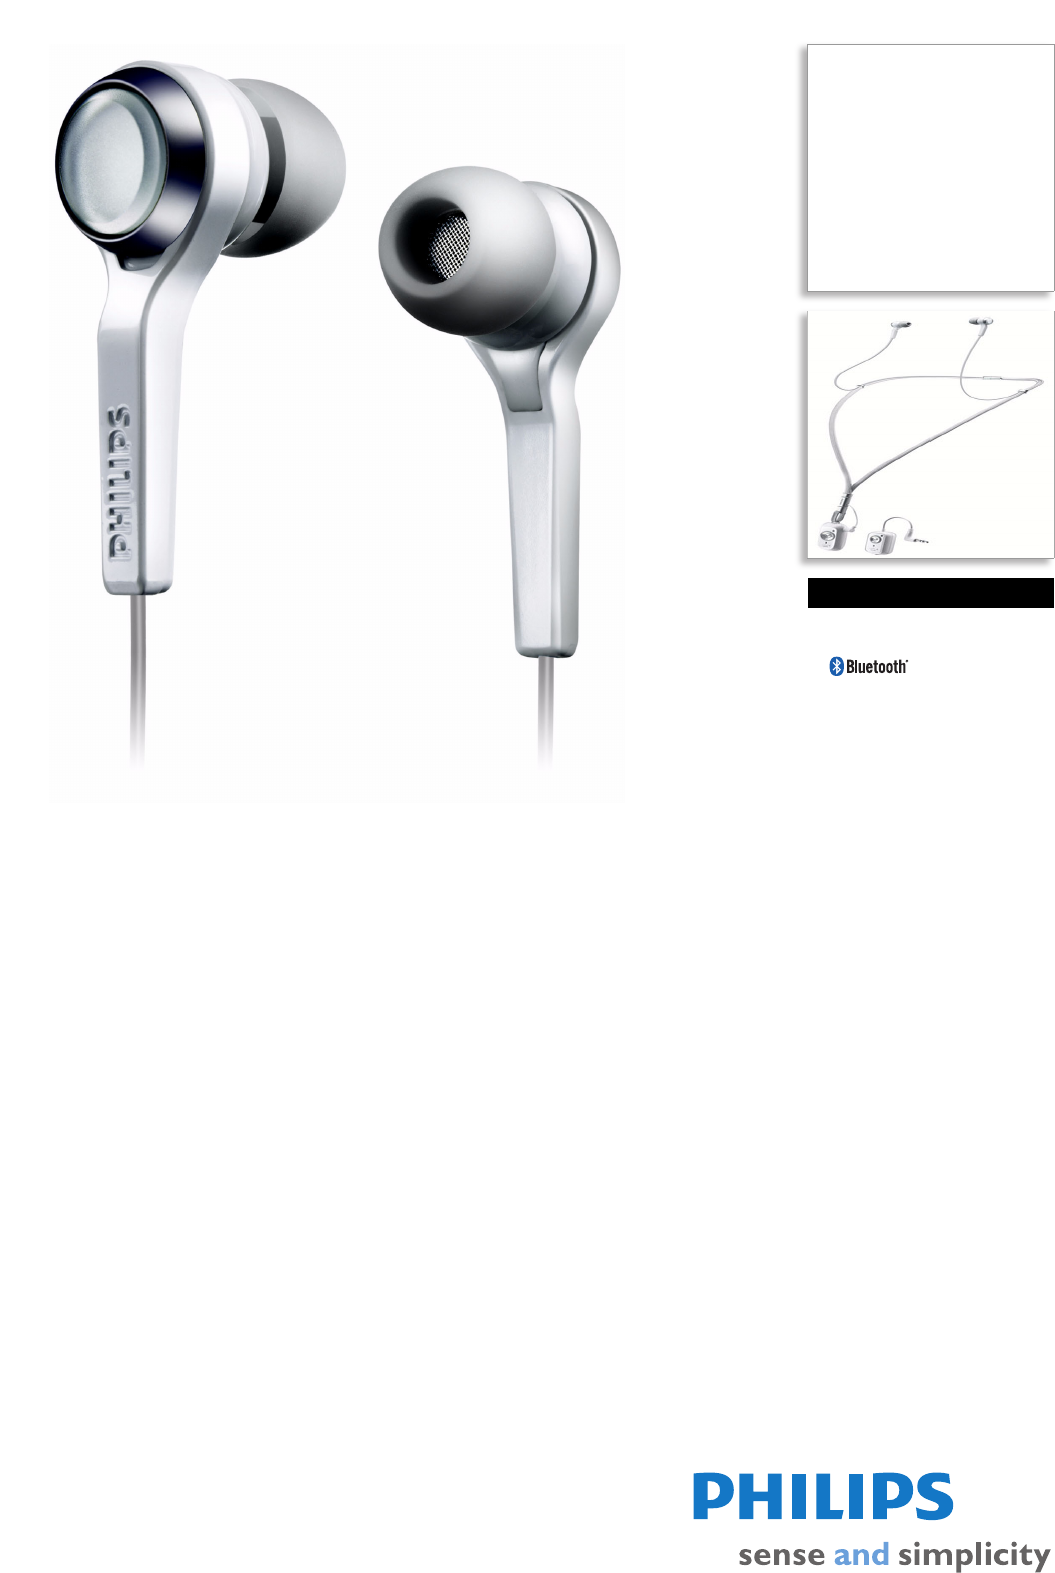 philips bluetooth headset shb7102 user guide manualsonline com rh phone manualsonline com philips bluetooth headphones user manual Philips SHB6017 Bluetooth Stereo Headset